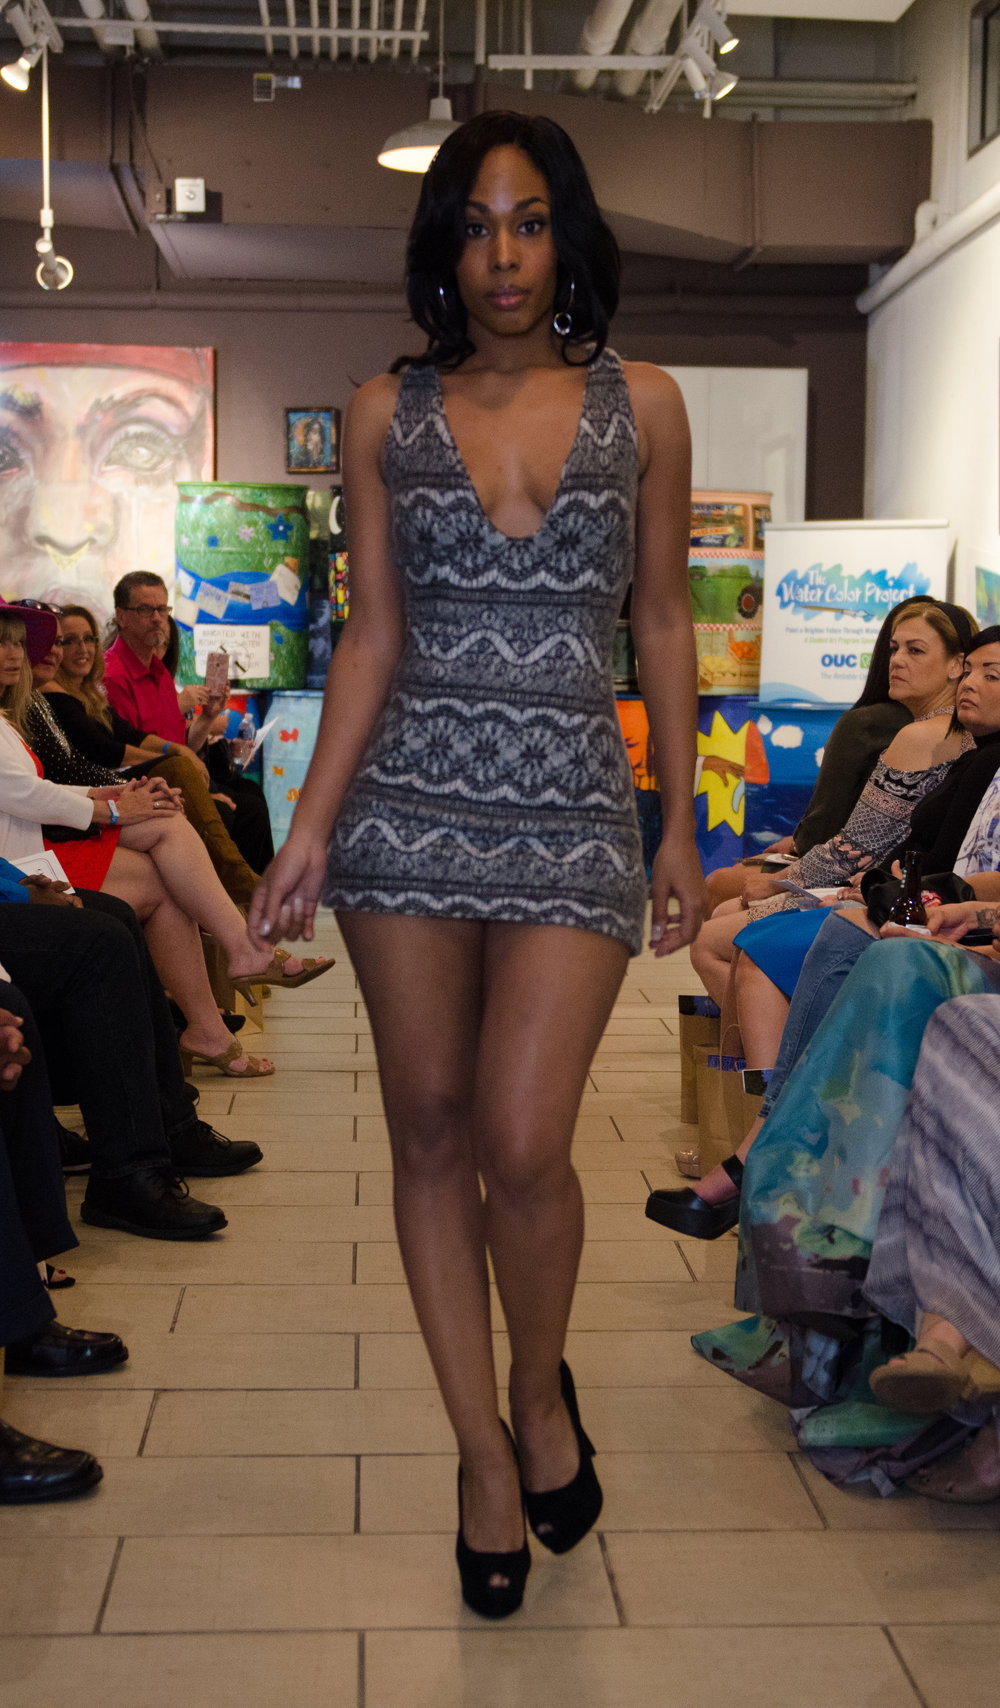 Orlando Fashion Week - Photos Courtesy of Chris Duroseau